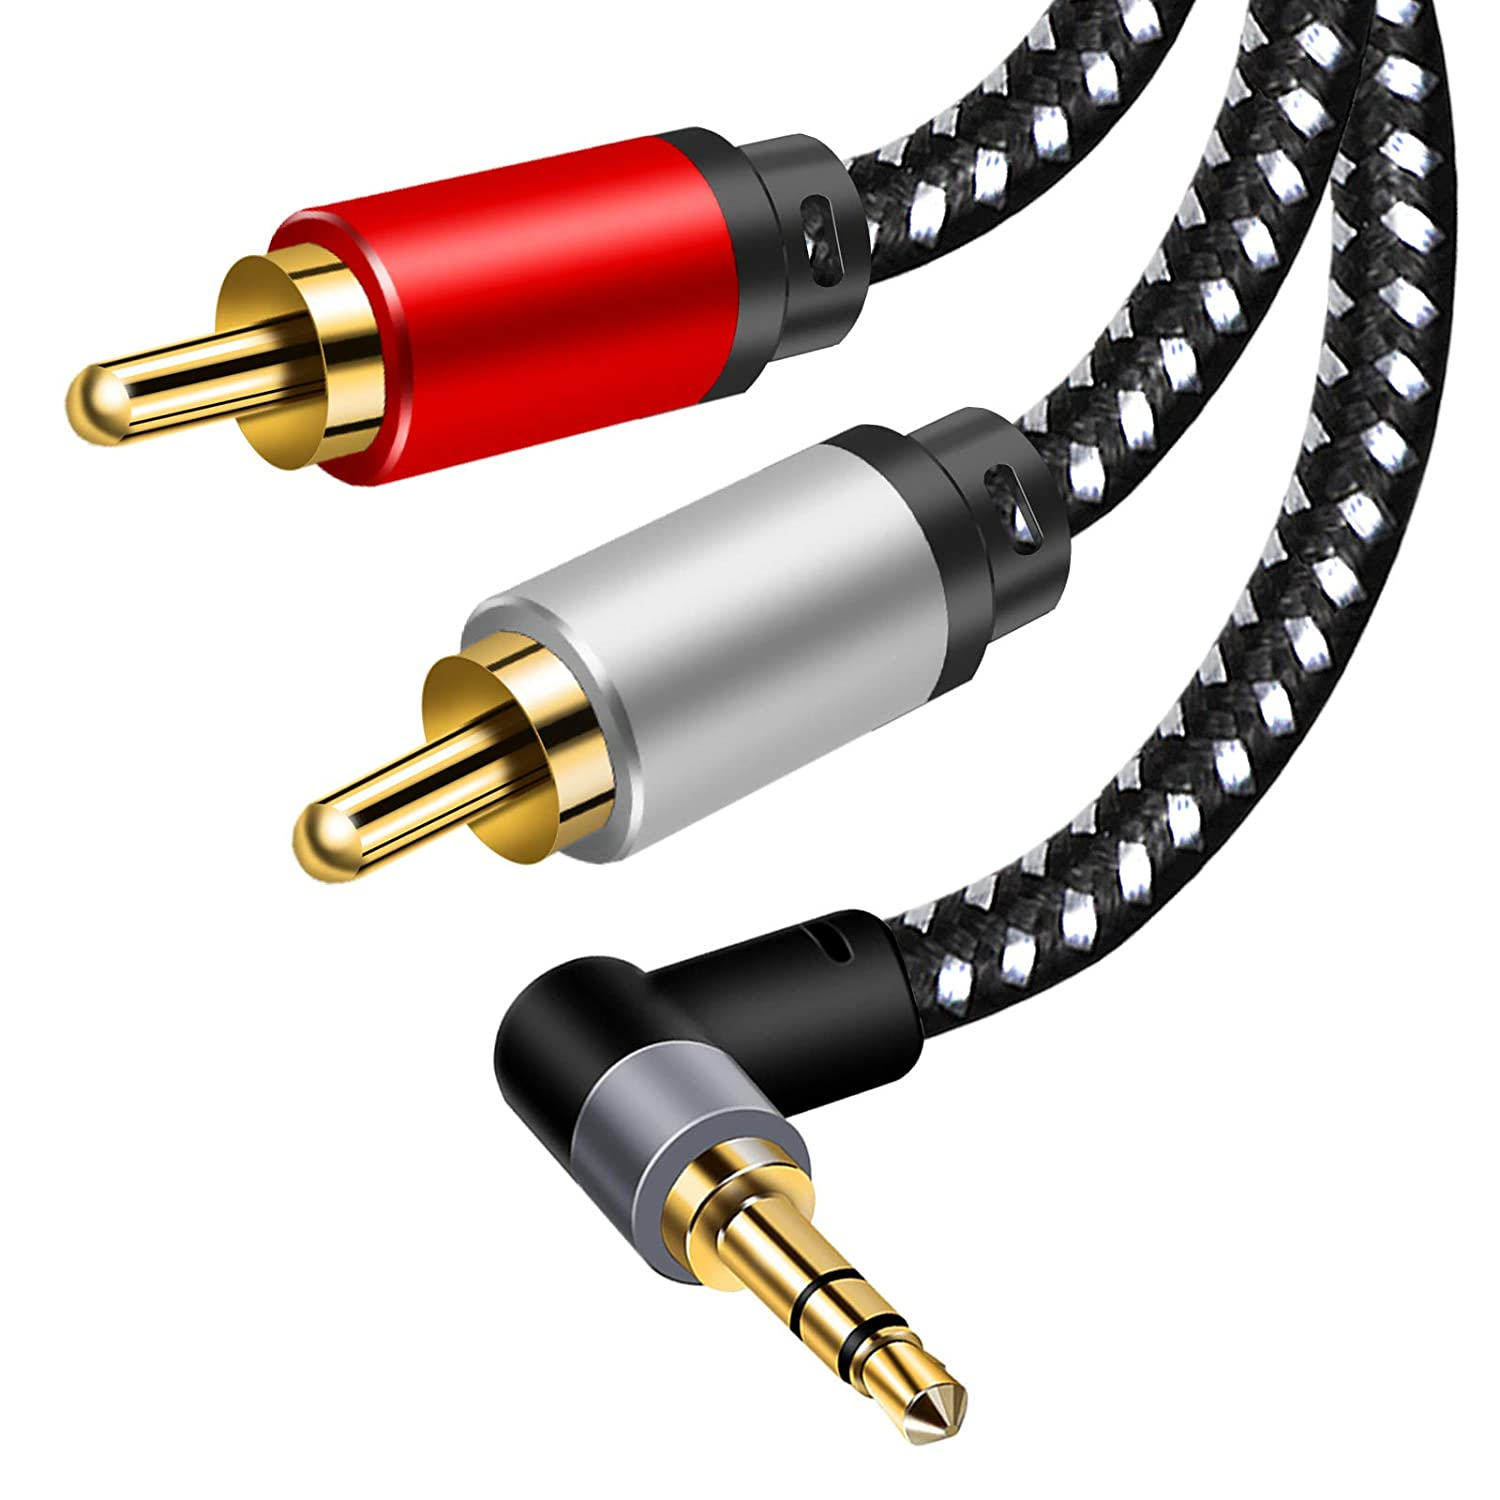 3.5mm Aux Cables, 90° RCA Audio Cable, 3.5mm to 2-Male RCA Stereo Splitter Cable 1/8